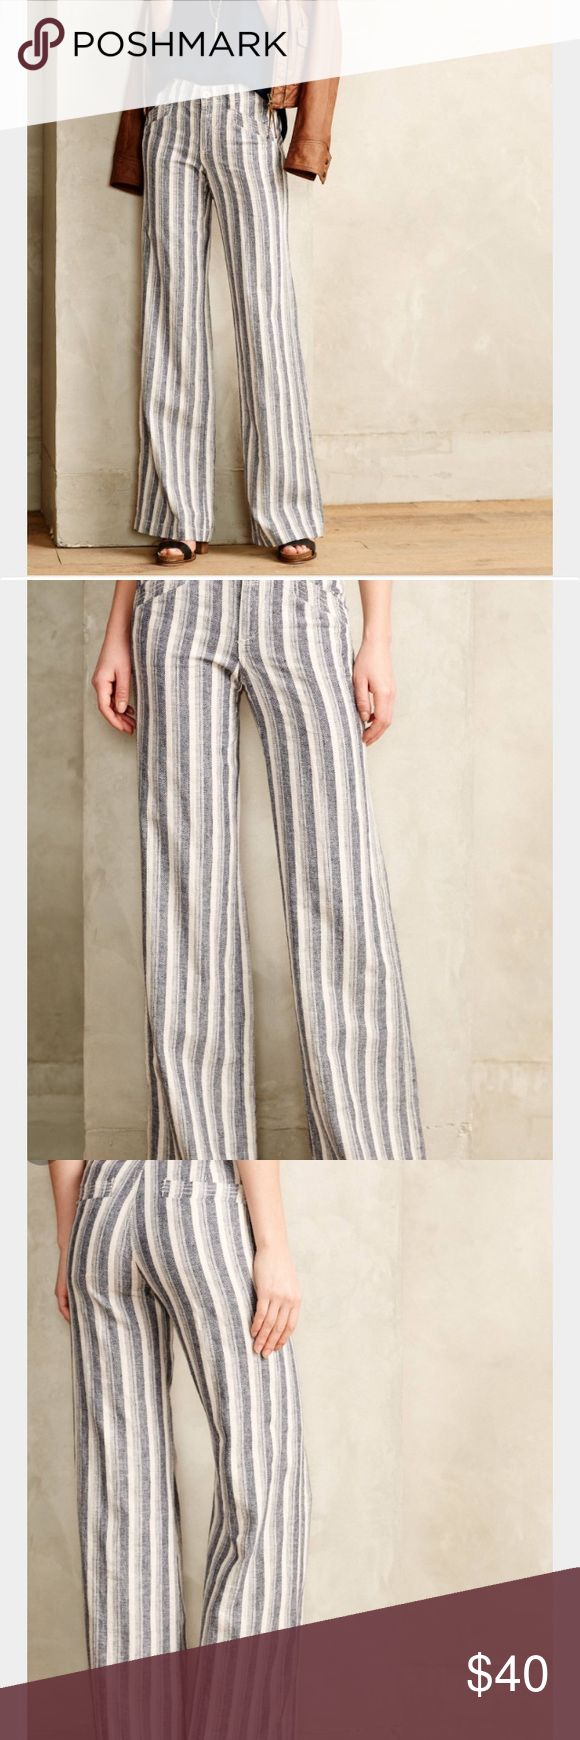 Pilcro Stripe Linen Trouser Blue and white linen trousers by Pilcro. Listed at size 4, fit like size 2. Worn only a few times. Anthropologie Pants Boot Cut & Flare